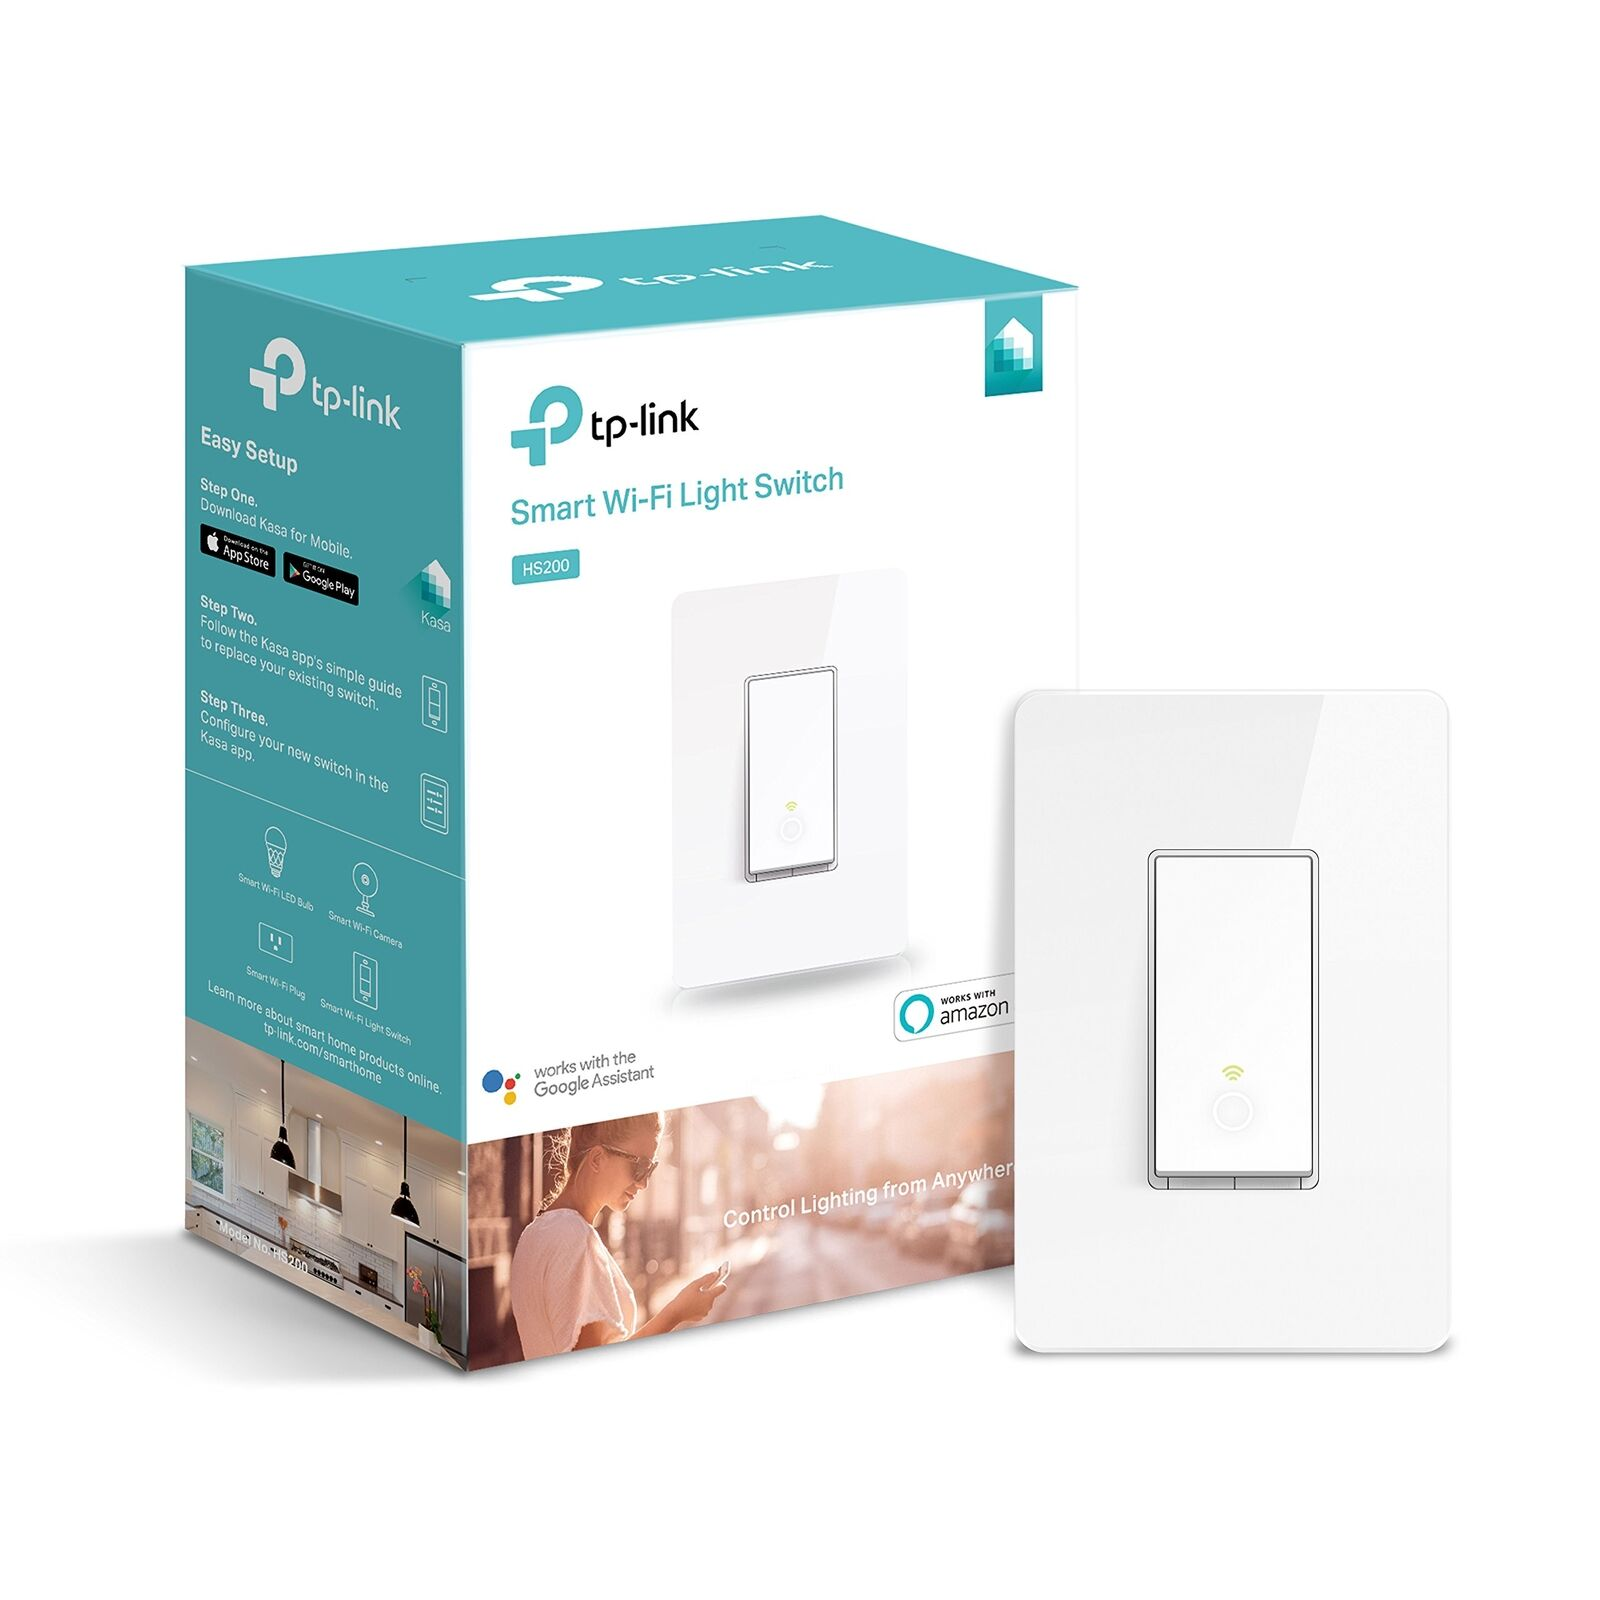 Kasa Smart Wi-Fi Light Switch by TP-Link - Control Lighting from Anywhere, Easy